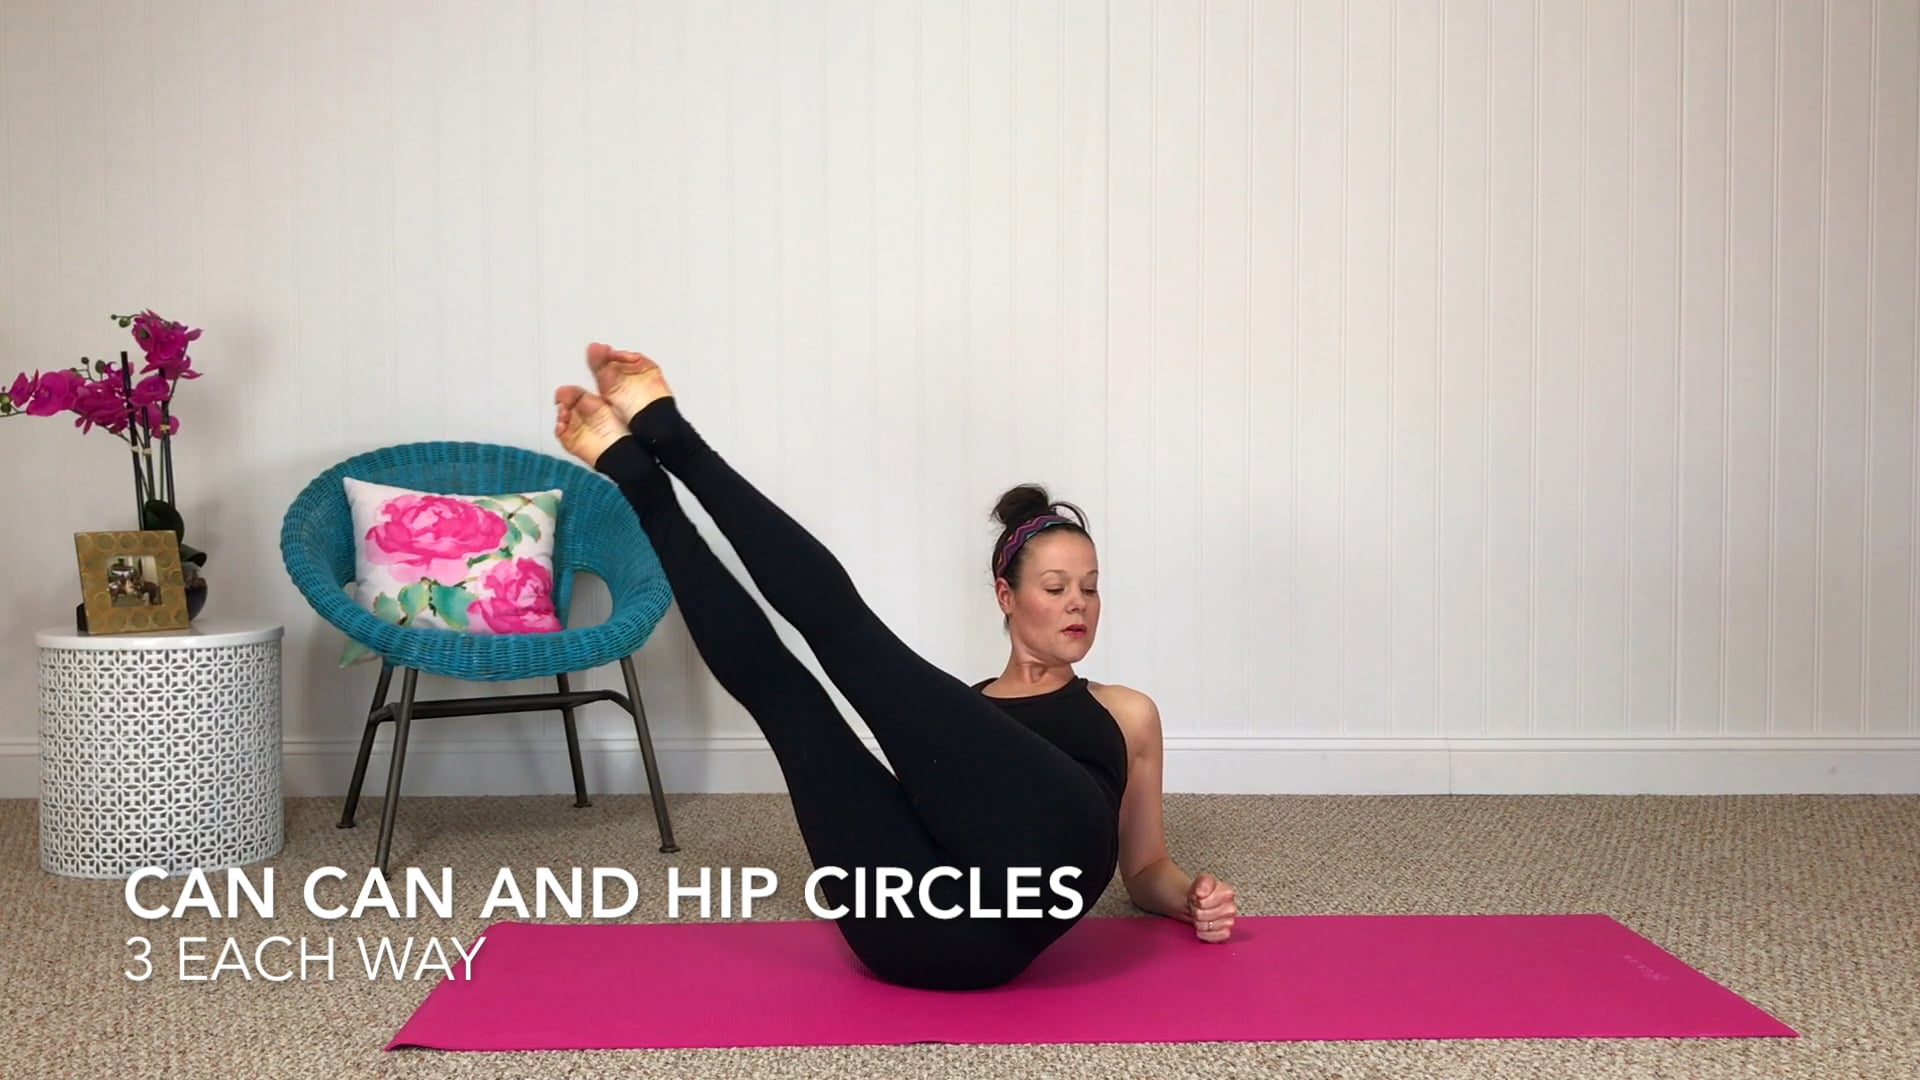 Can Can and Hip Circles